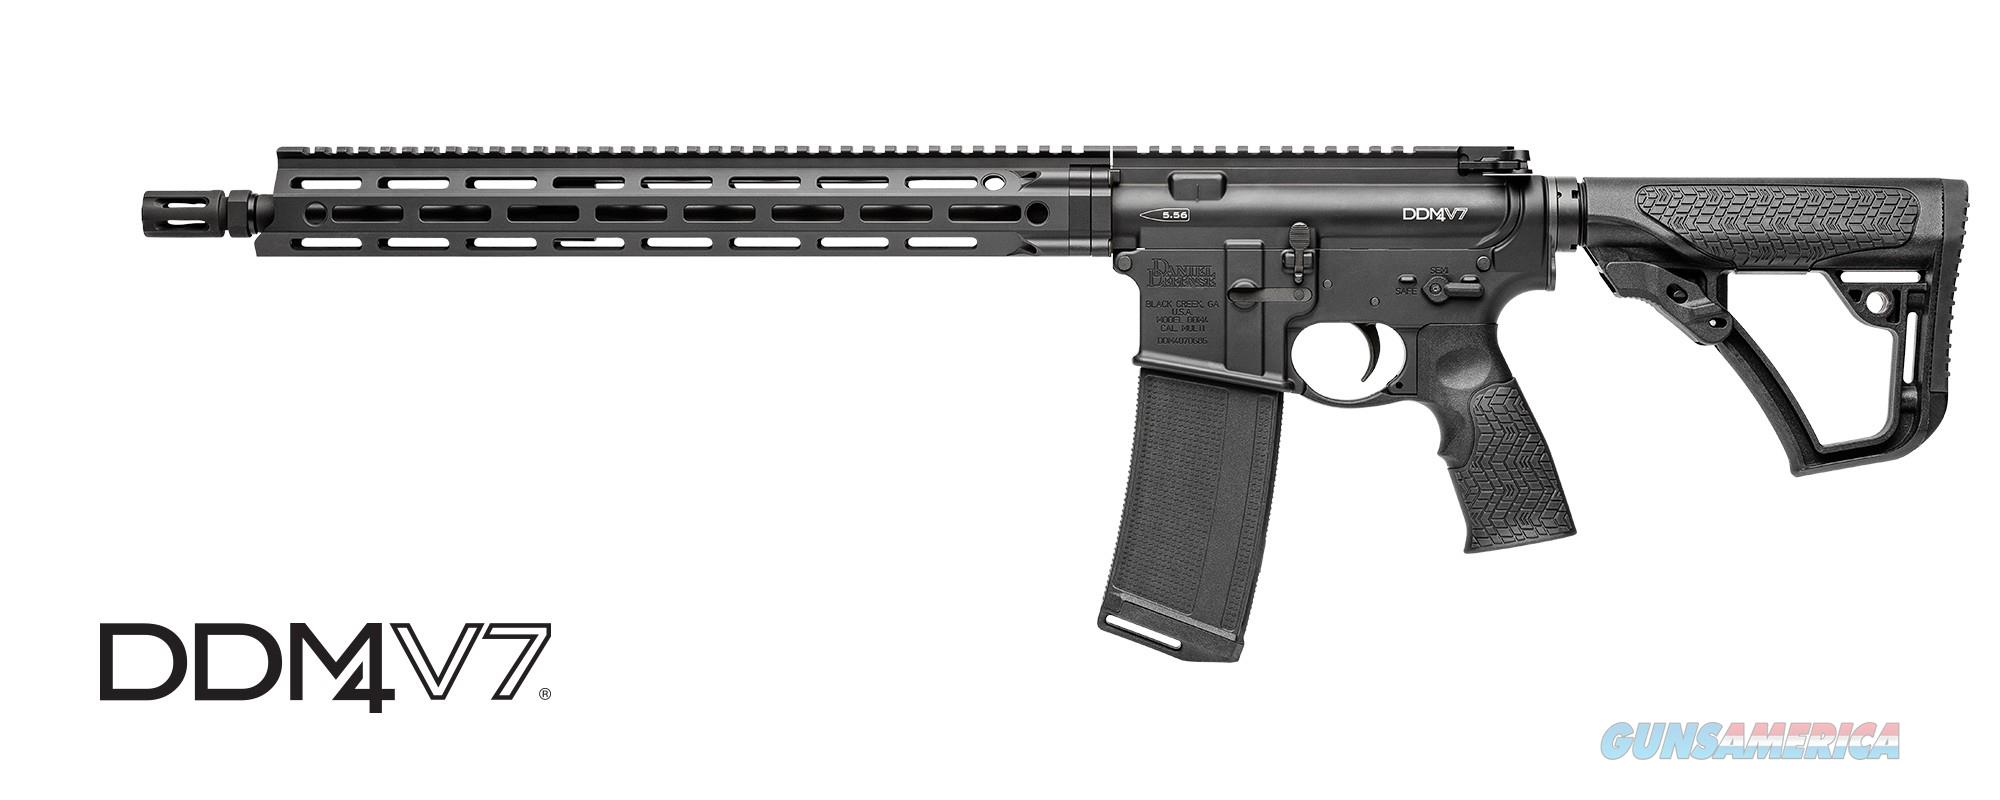 Daniel Defense DDM4 V7 Centerfire Rifle  Guns > Rifles > Daniel Defense > Complete Rifles